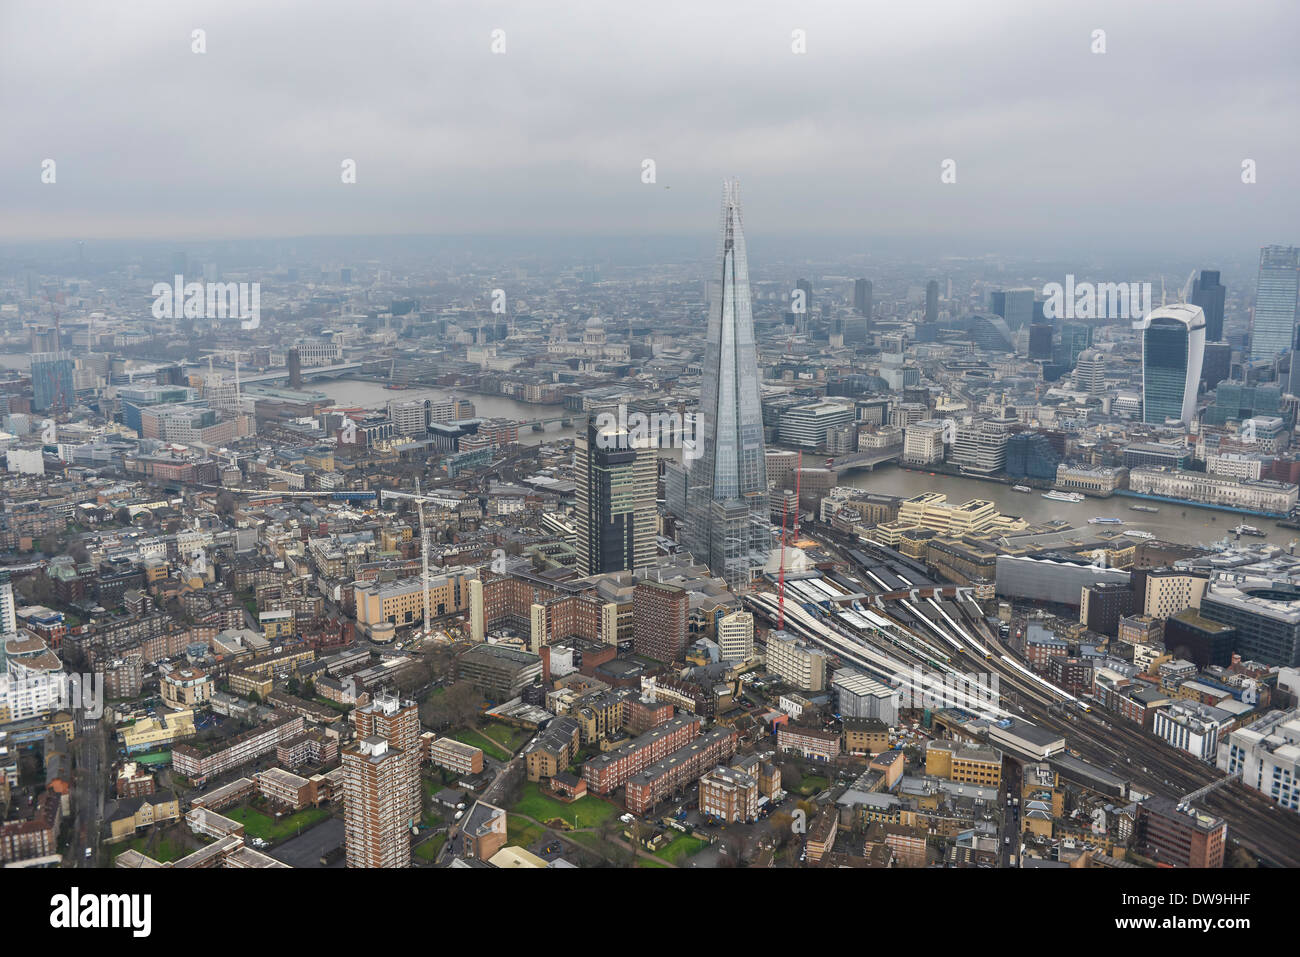 Aerial Photograph showing The Shard with the City of London visible in the background - Stock Image